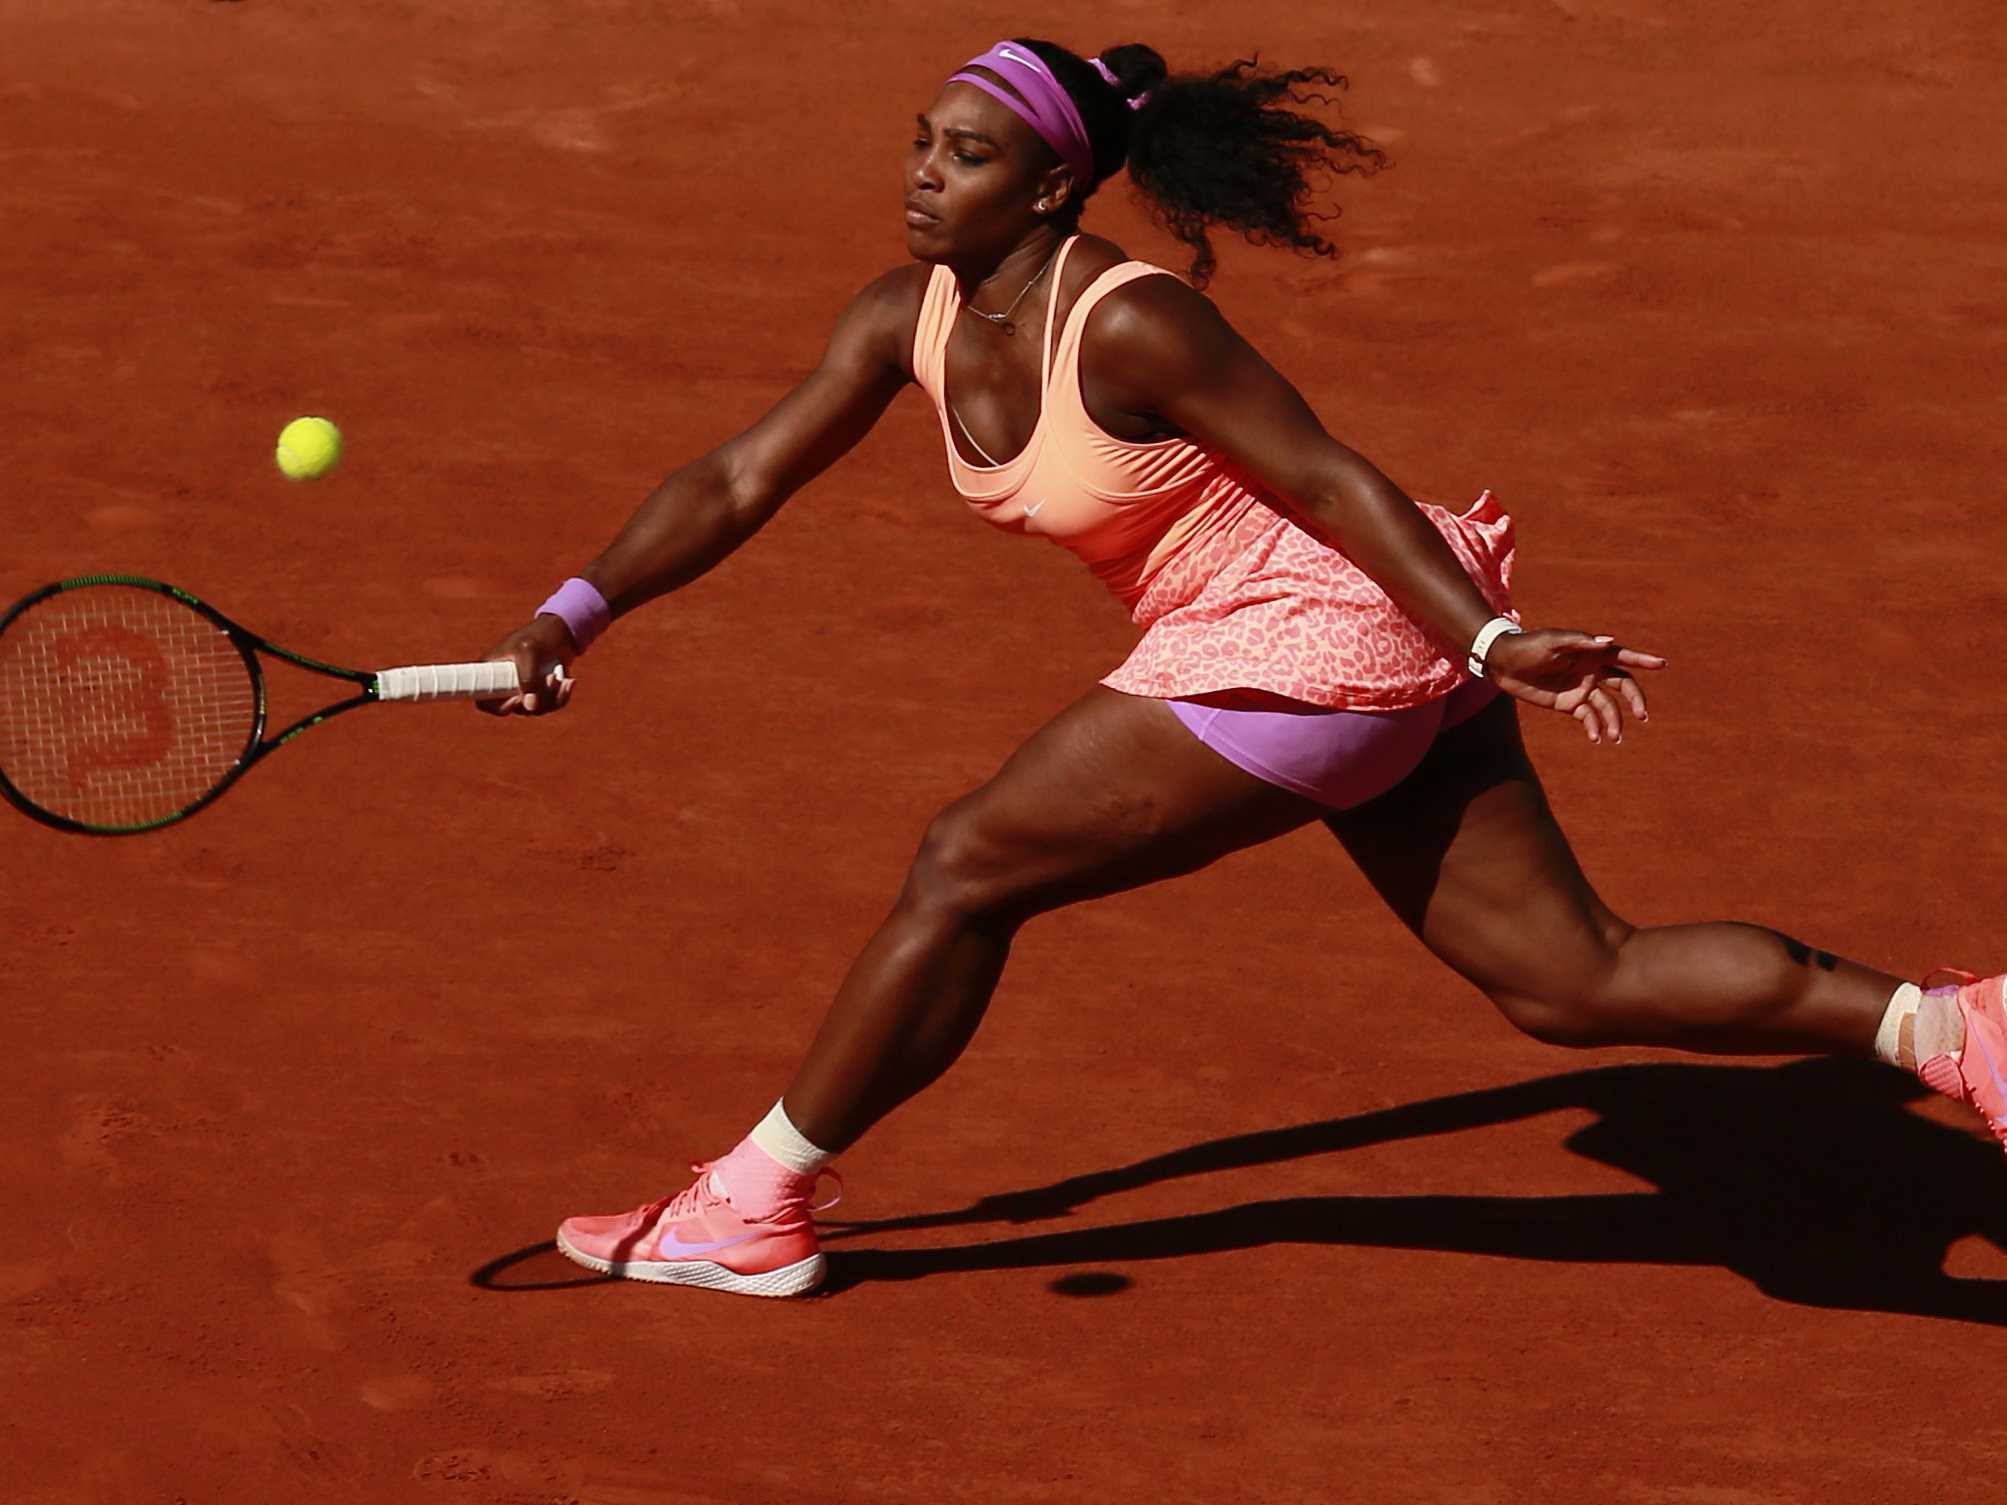 The most successful female athlete of all time just got body shamed in the New York Times